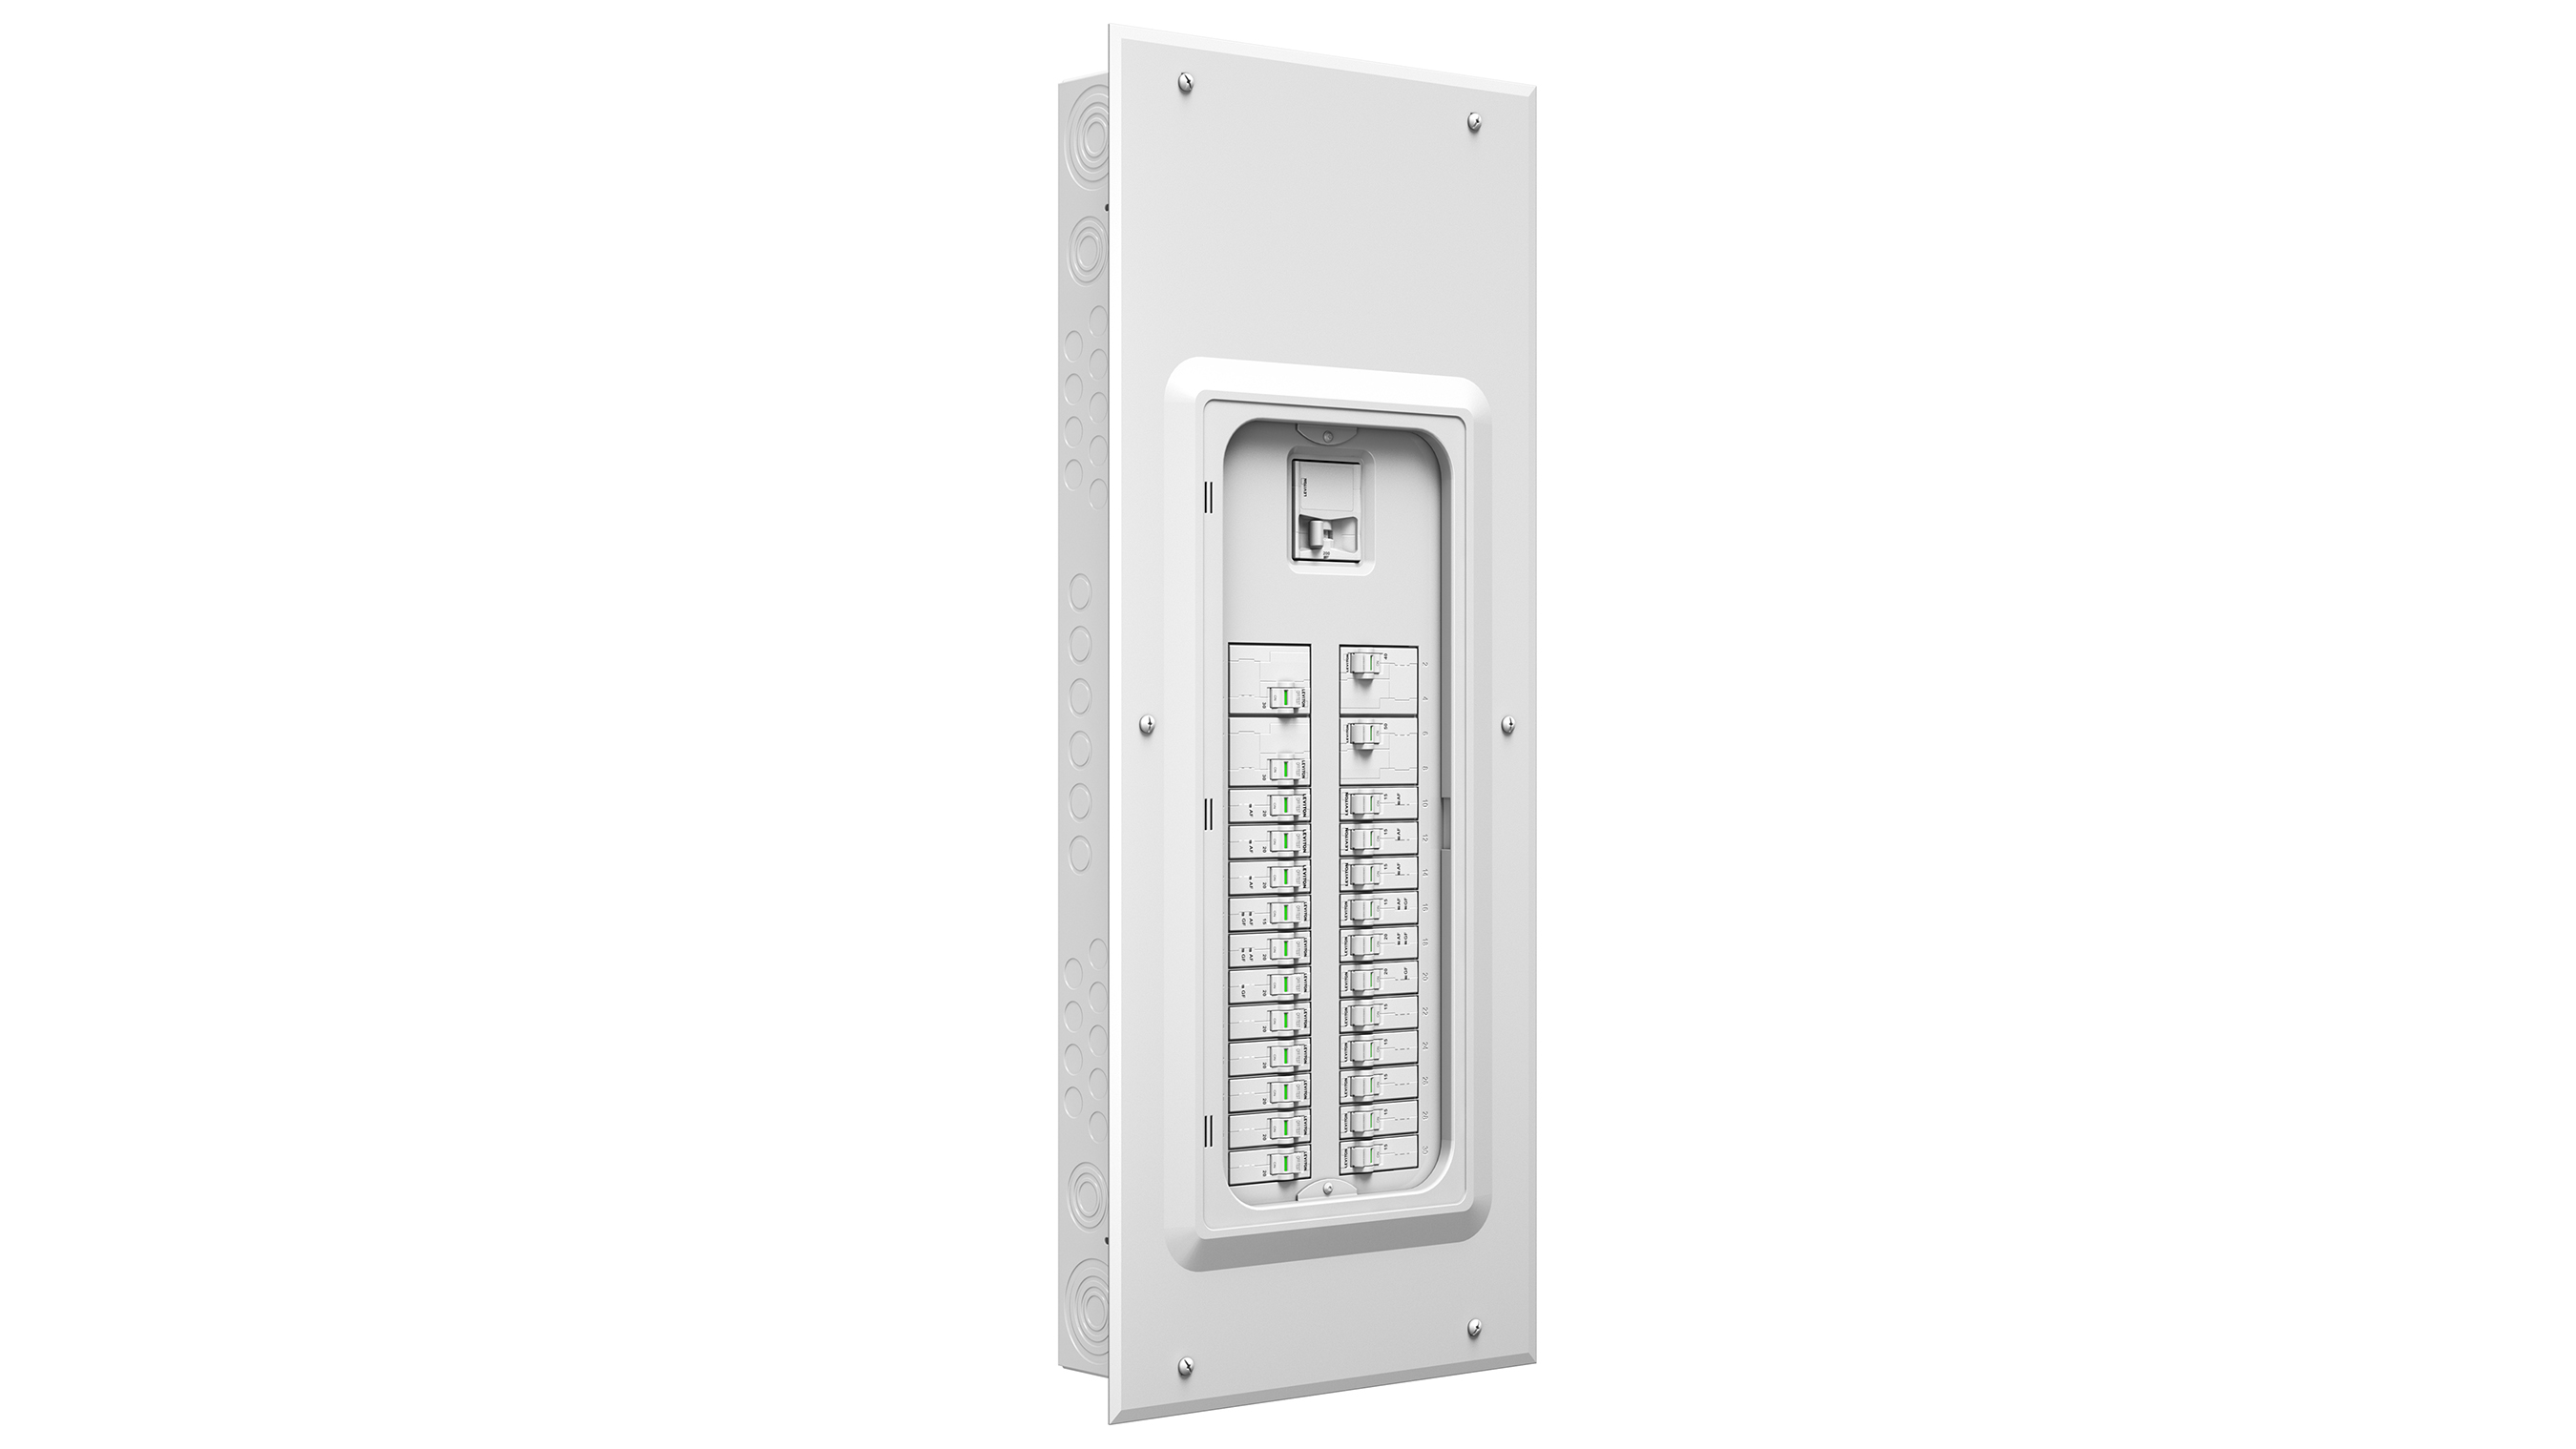 Electrical Why Does My Gfci Circuit Breaker Trip With Any Small Load